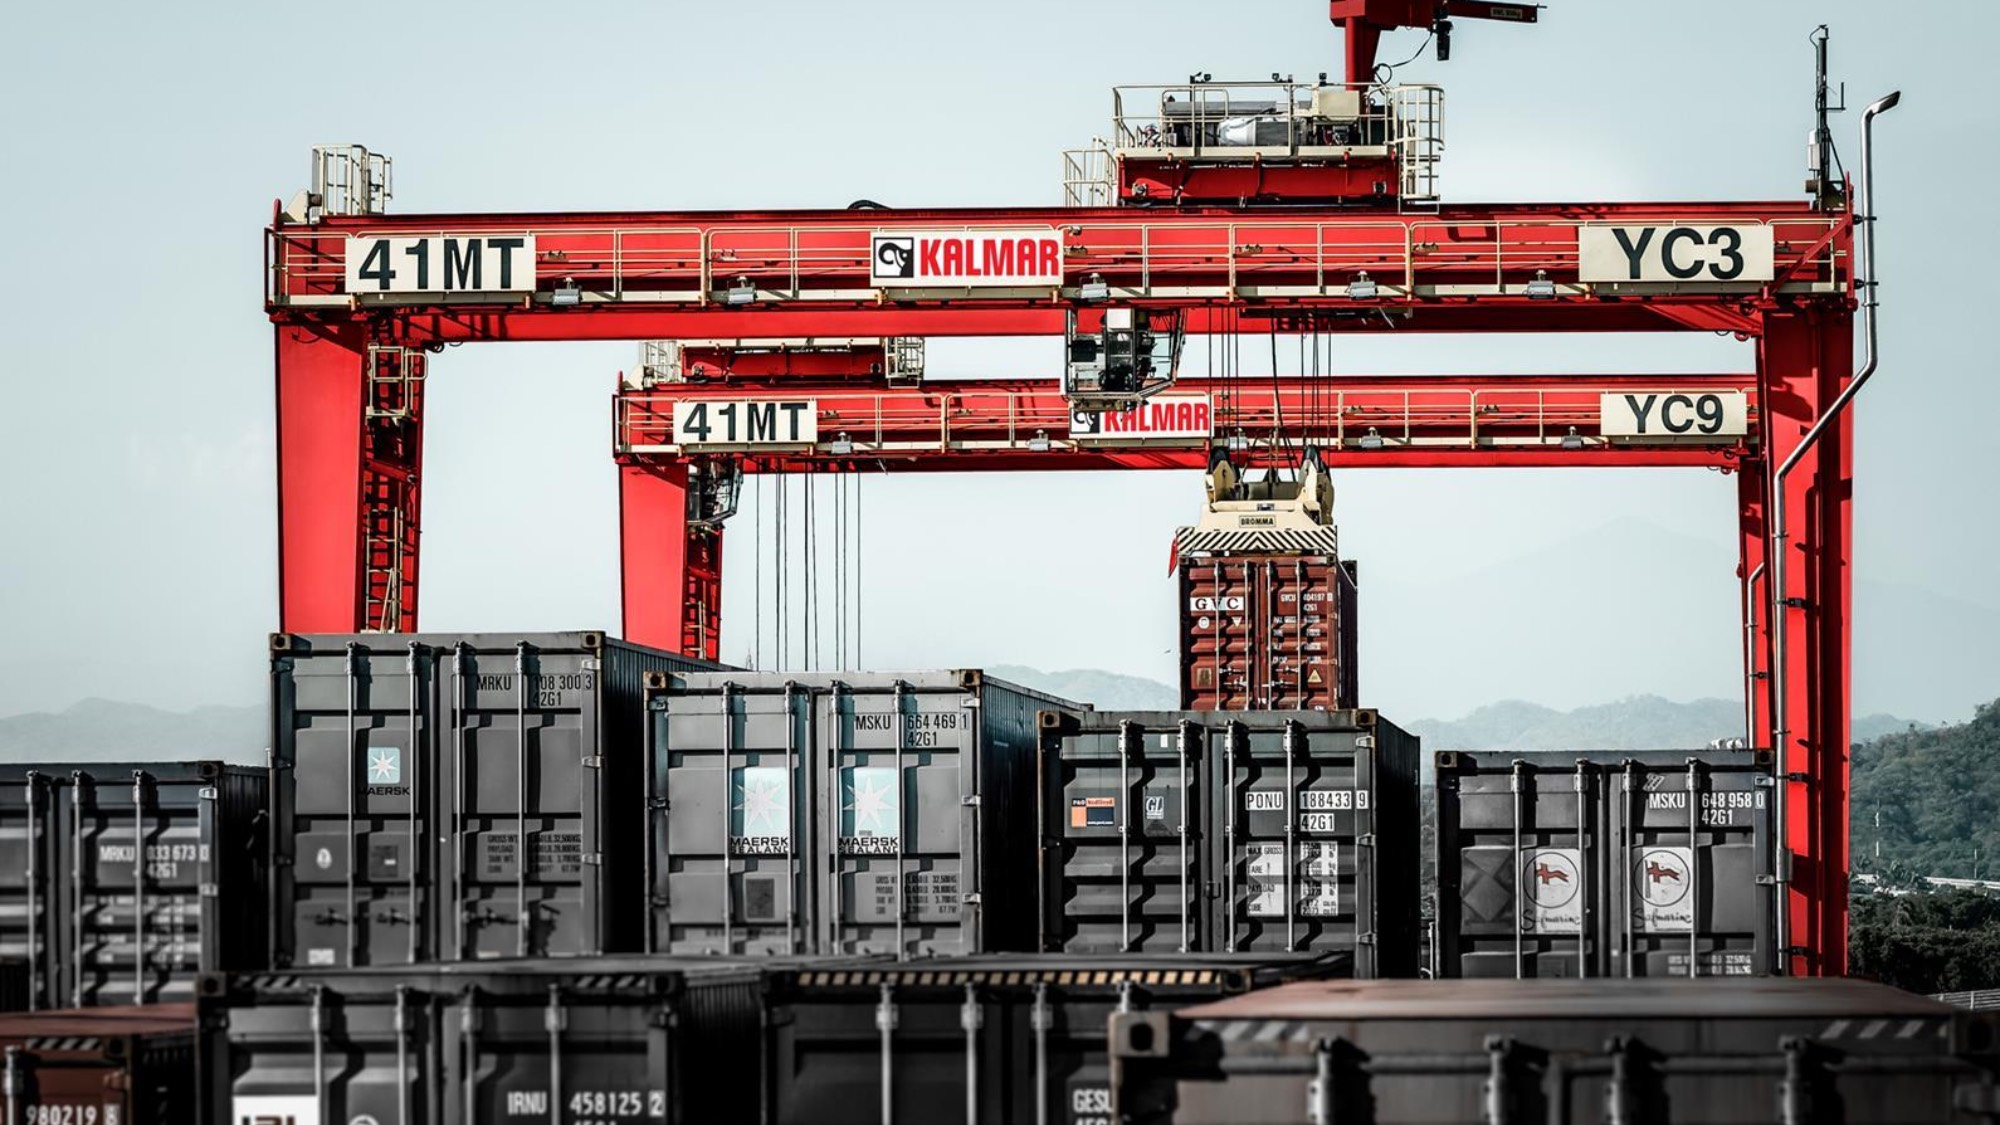 Kalmar cranes and containers